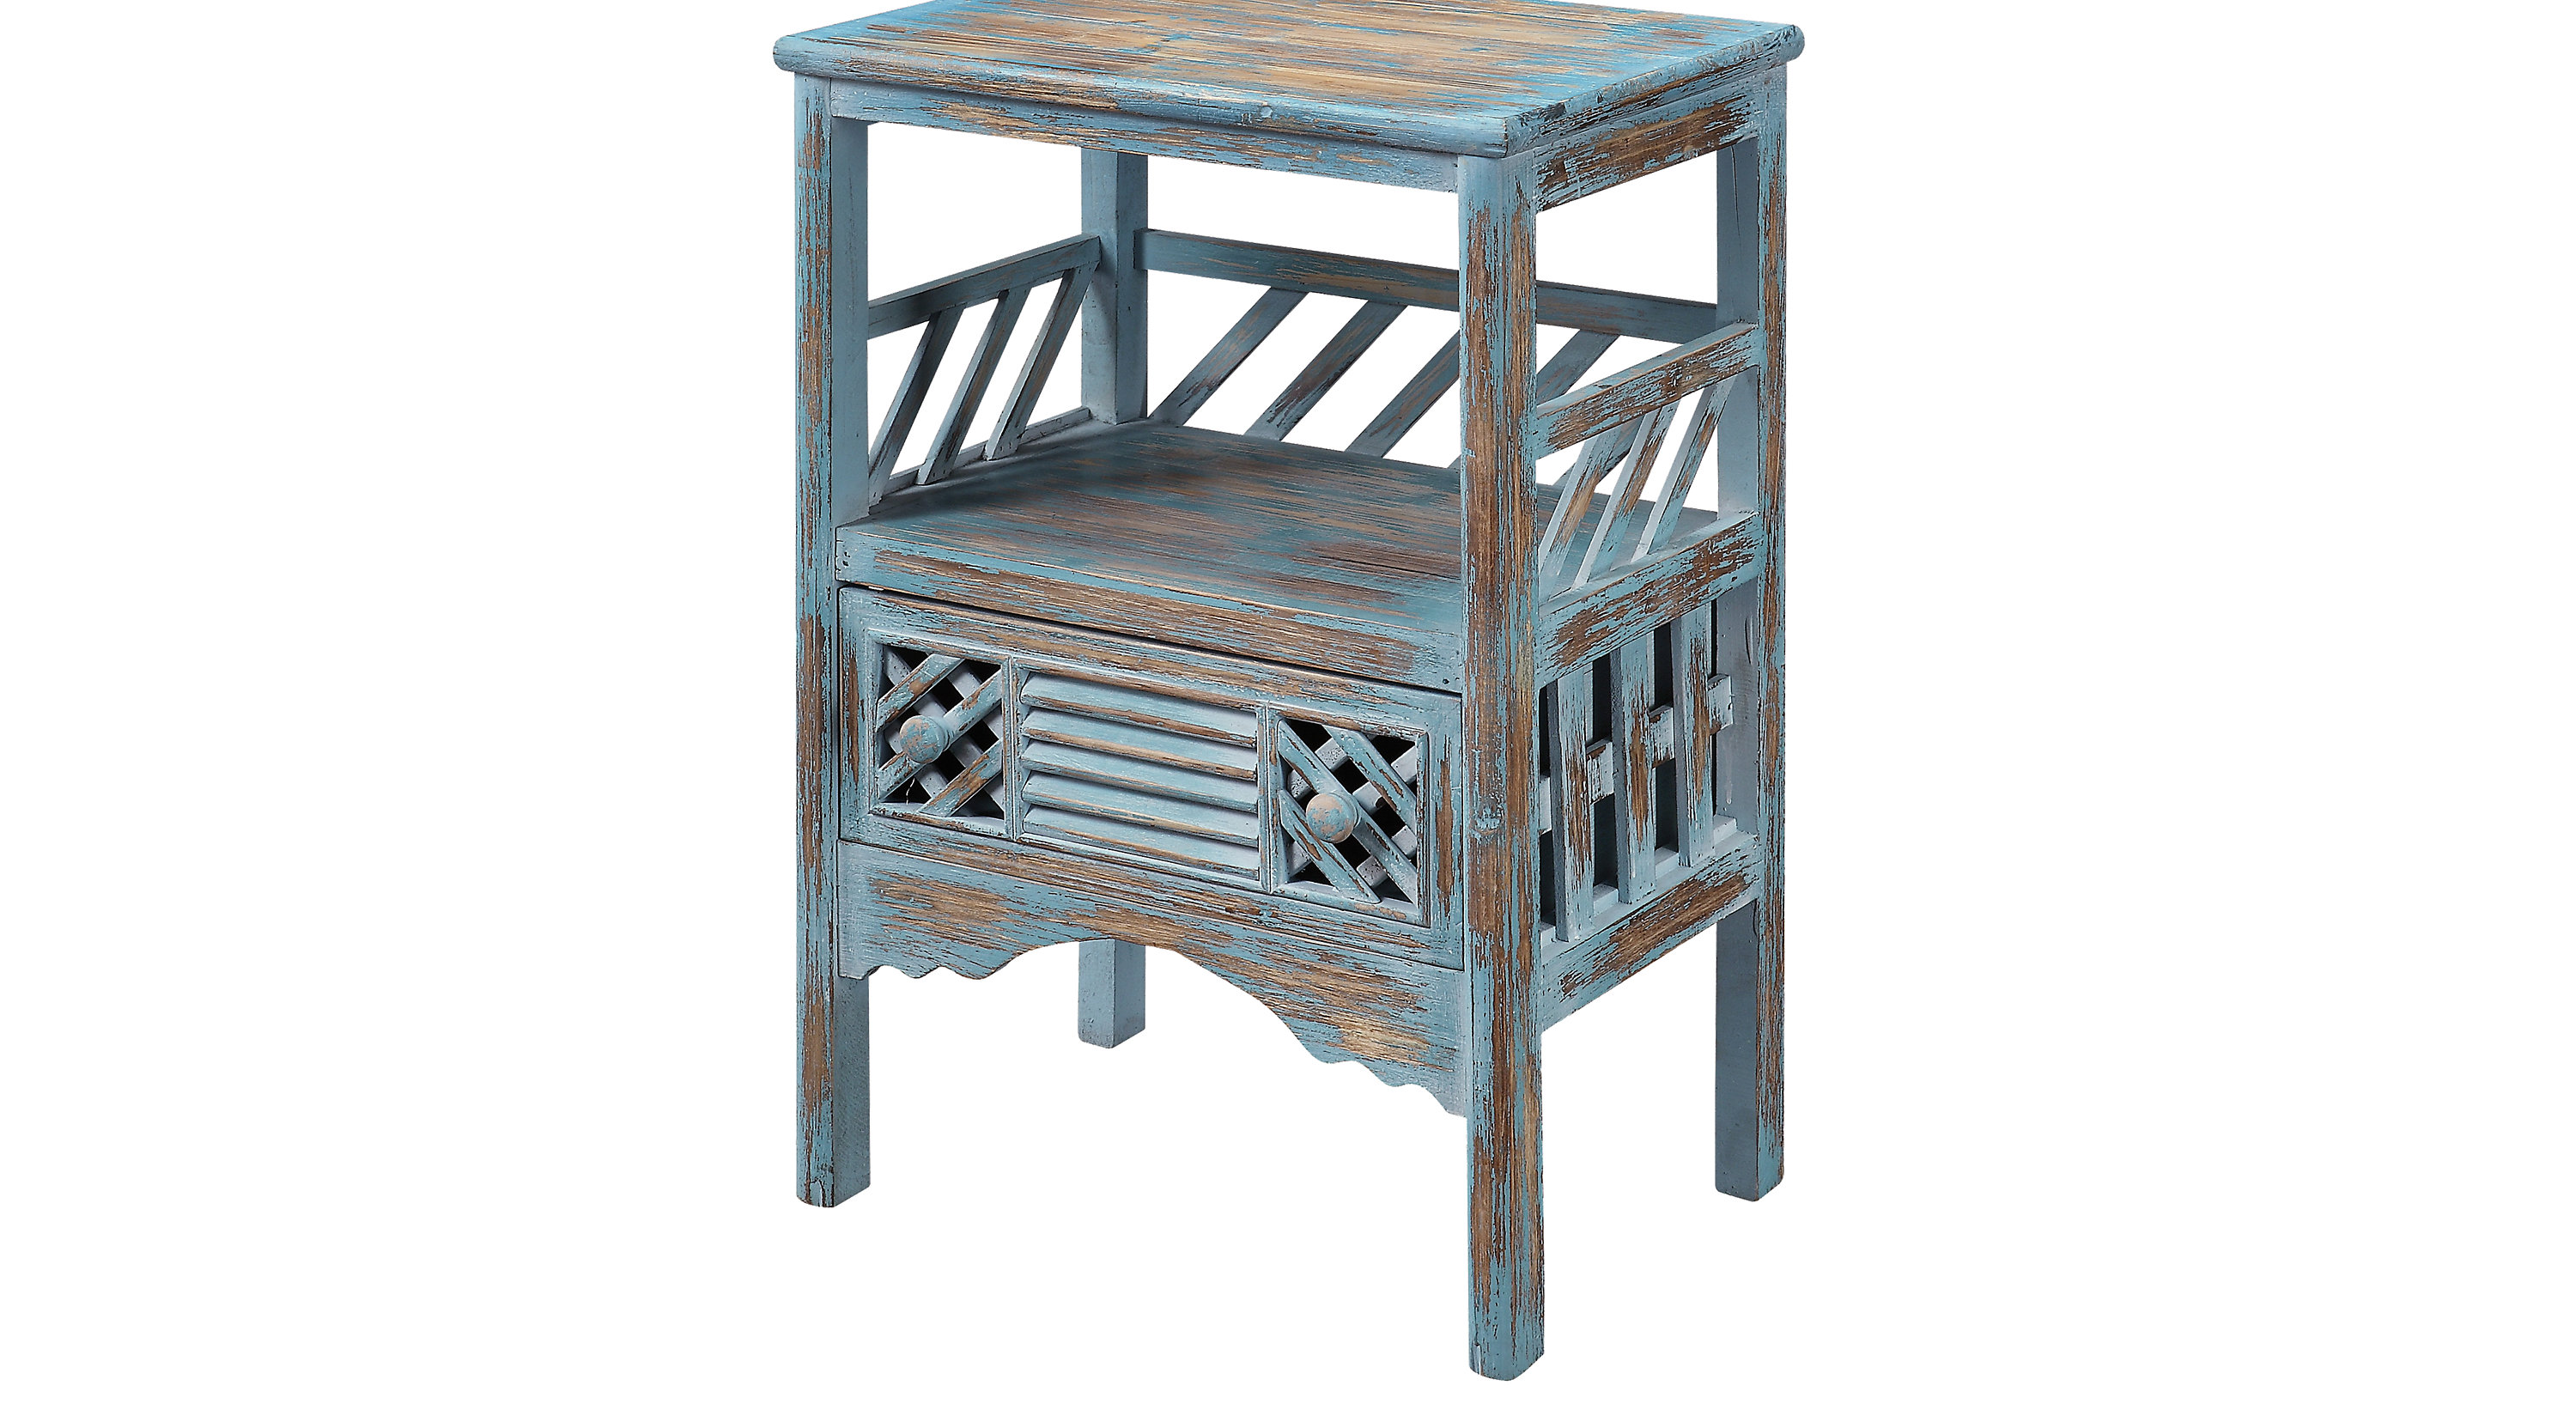 zowen blue accent table transitional ashley furniture ott porcelain lamp drum bench distressed tables light mango wood silver grey tablecloth end coffee leather stool round